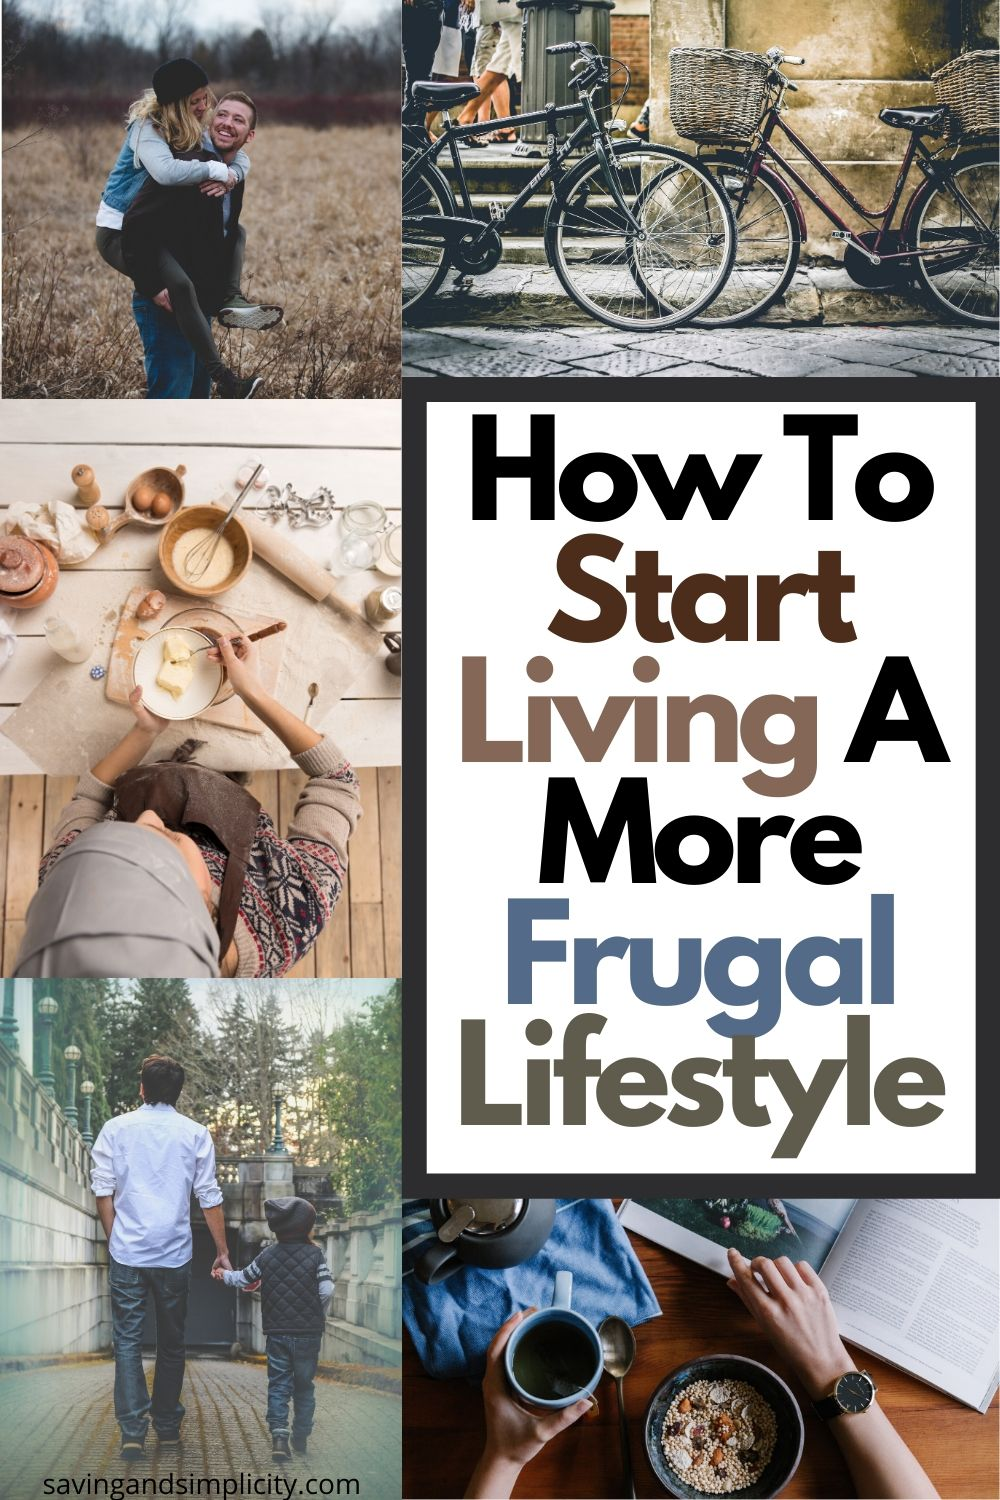 how to start frugal